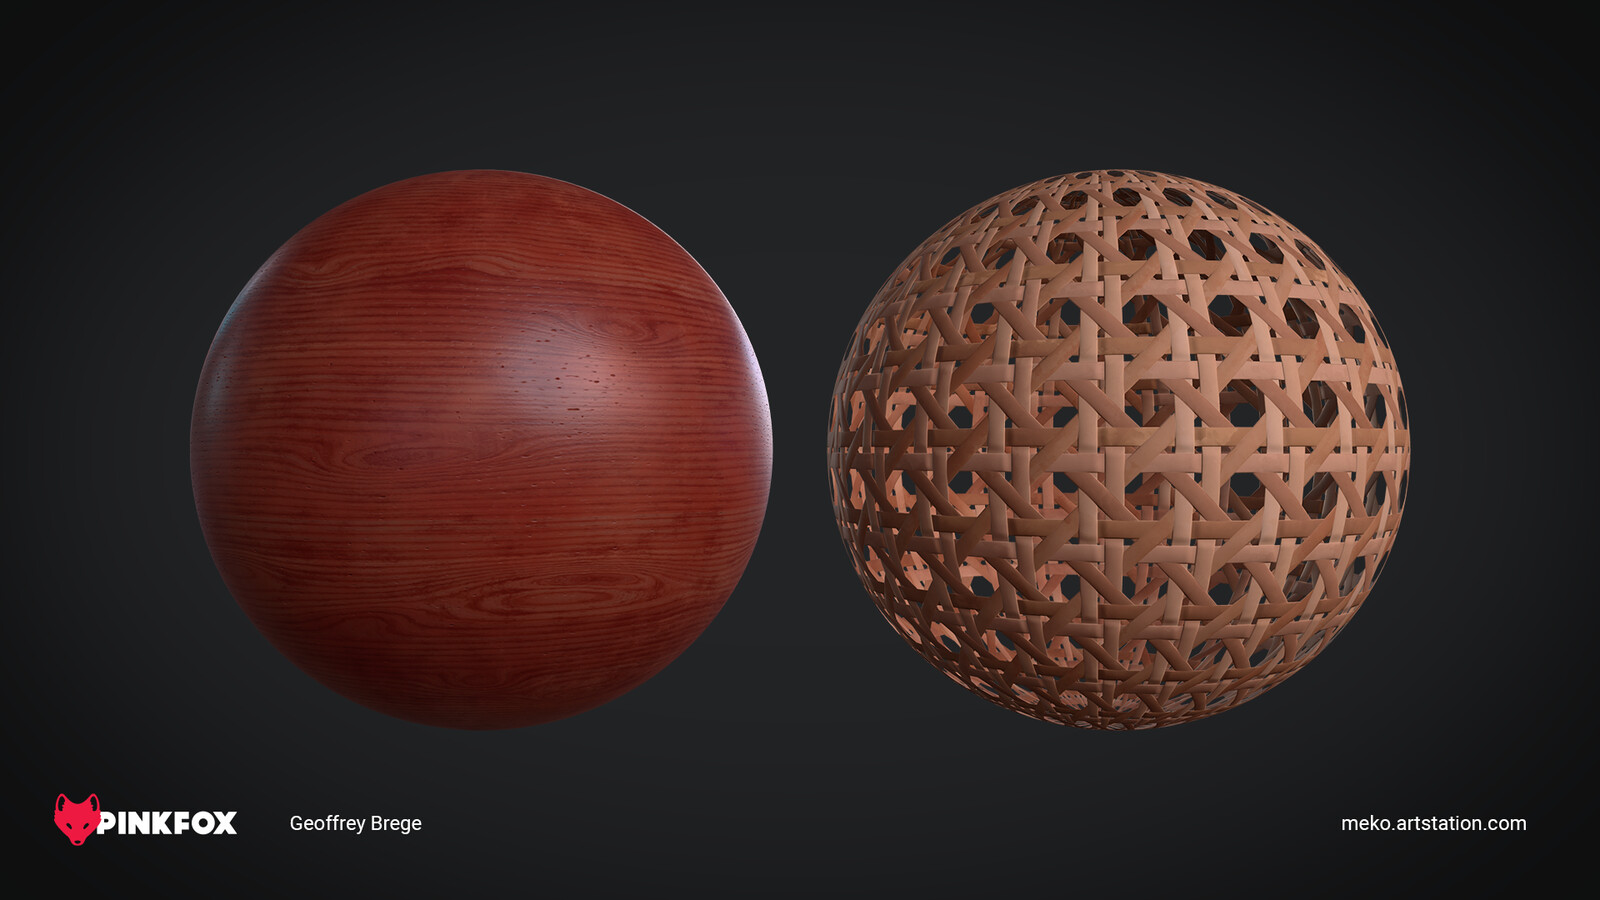 Mahogany and Wicker Weave Materials made in Substance Designer